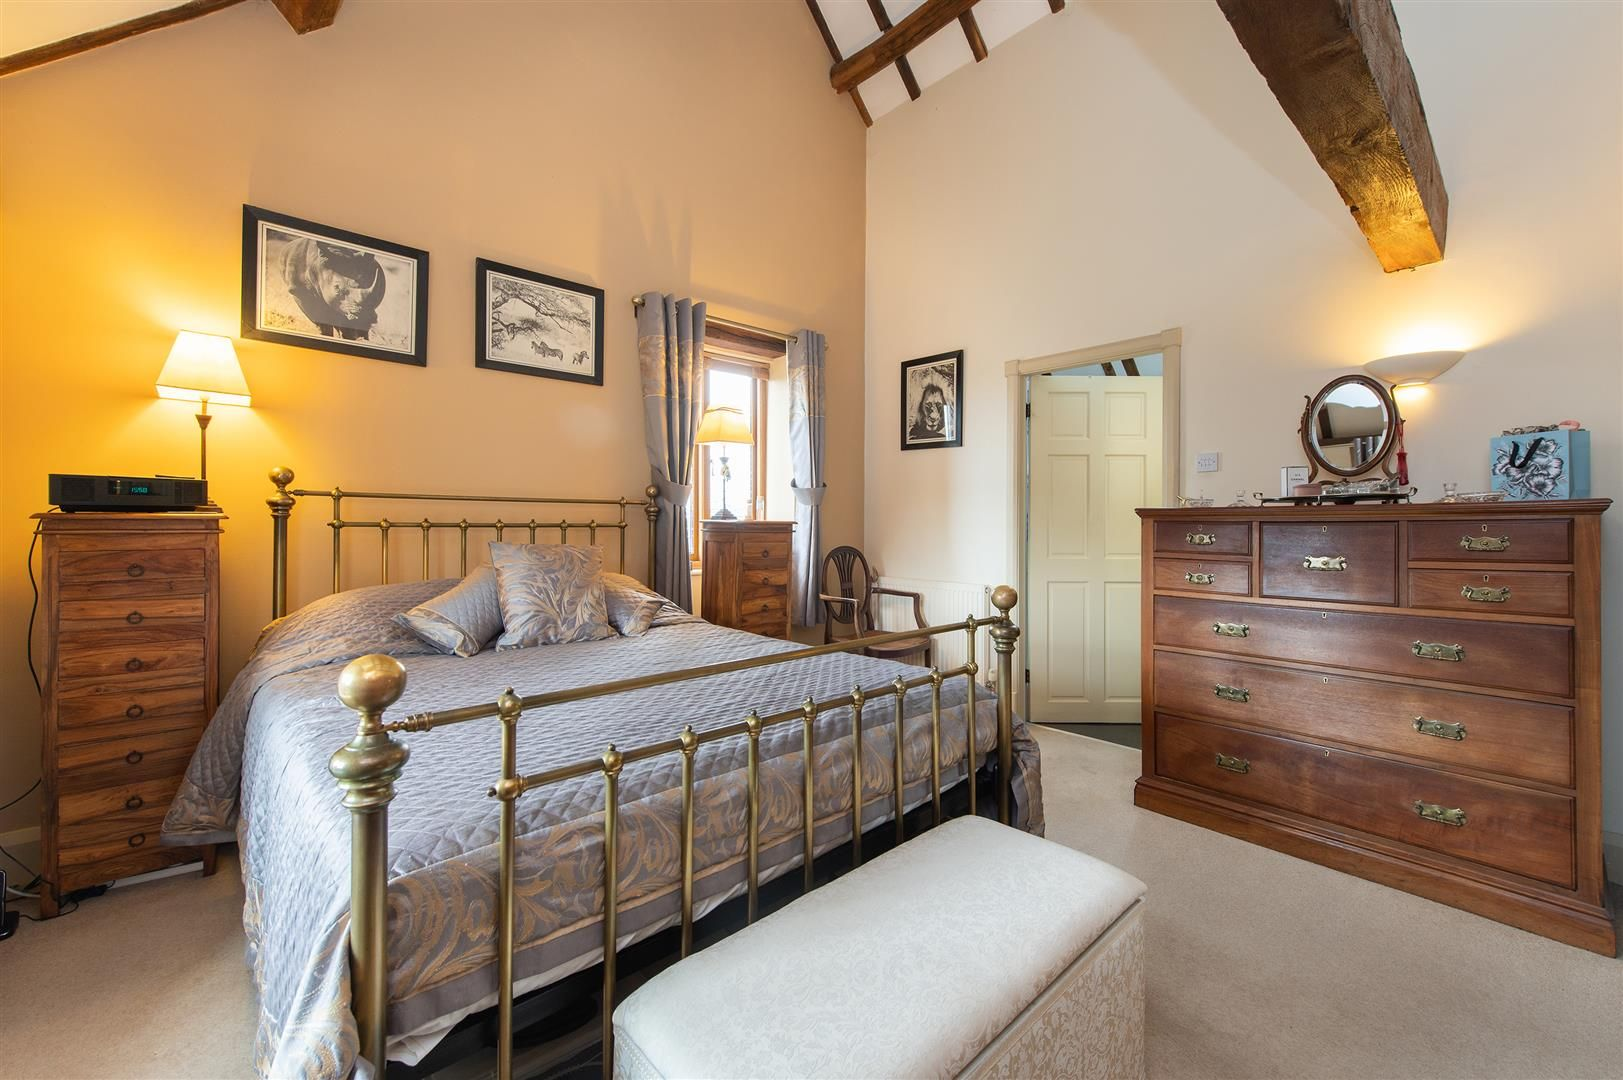 4 bed barn-conversion for sale in Wolverley 17